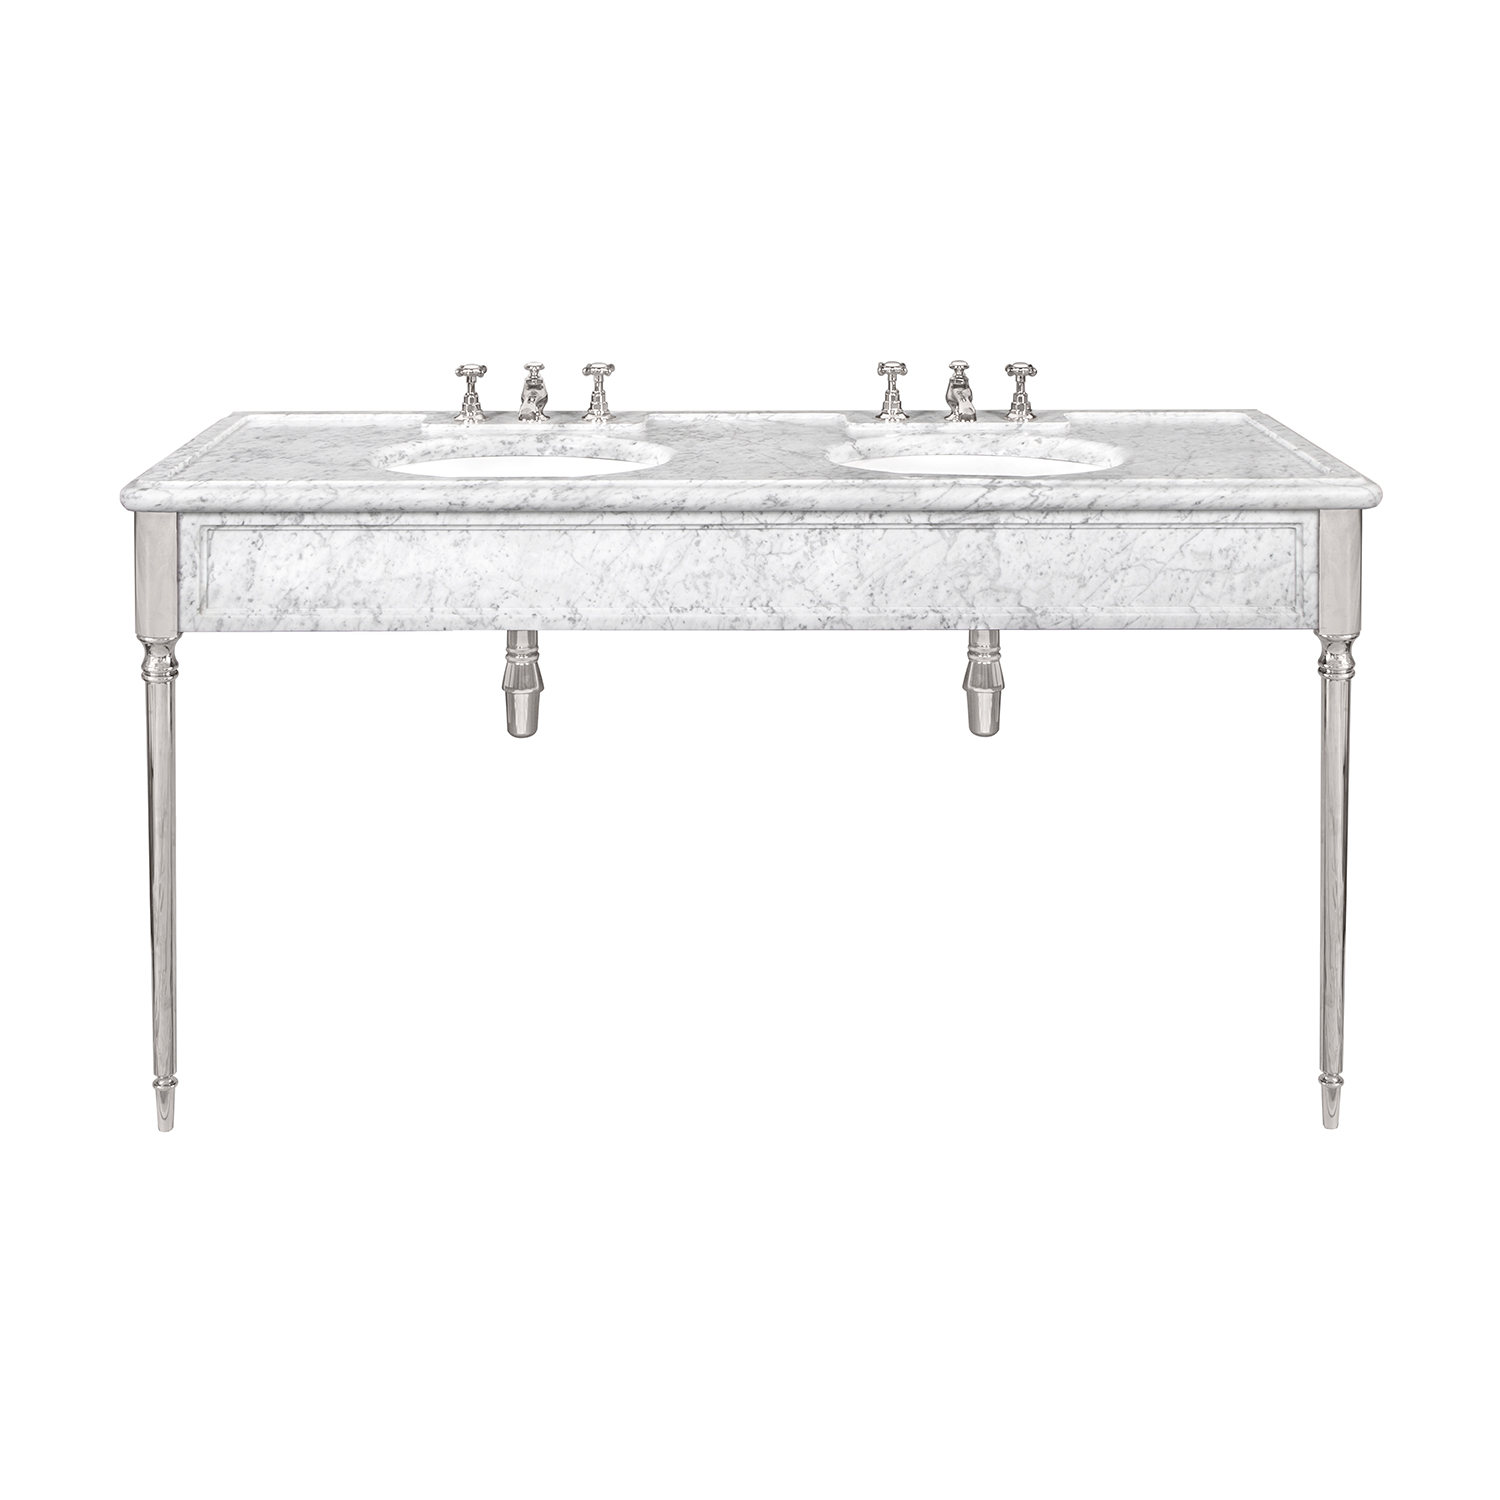 LB 6434 WH Edwardian double white Carrara marble console